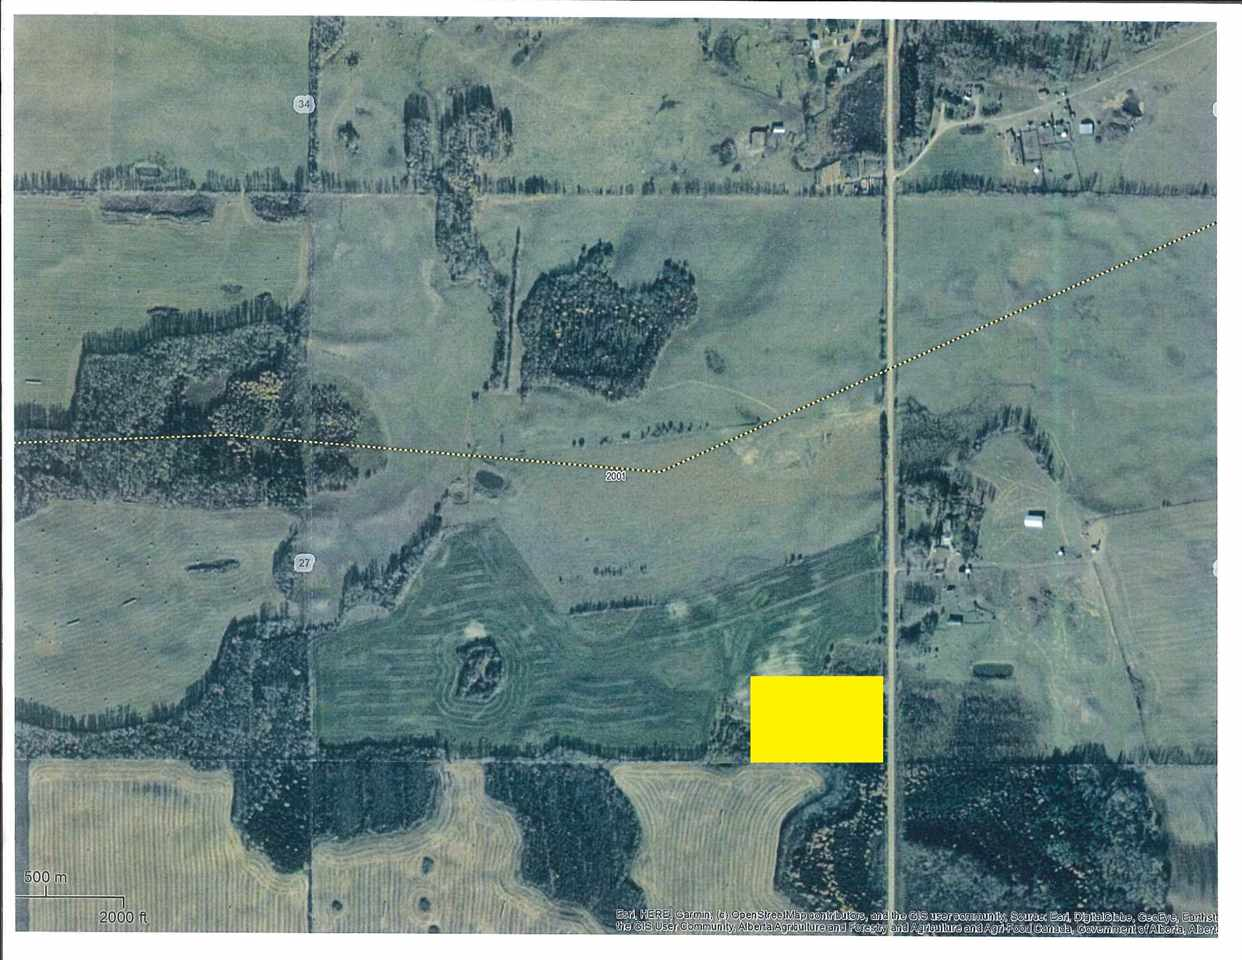 153 Acre Farm 3 miles West & 1/2 mile North of Barrhead. 133 acres currently open. (Roughly 103 acres cultivated & 30 acres central pasture/ grass hay). Farm has been rotated between seed grains, forage hays & pastures over past 30 years. Good high building site if desired as well as replenish-able dugout water source from Groundwater runoffs.